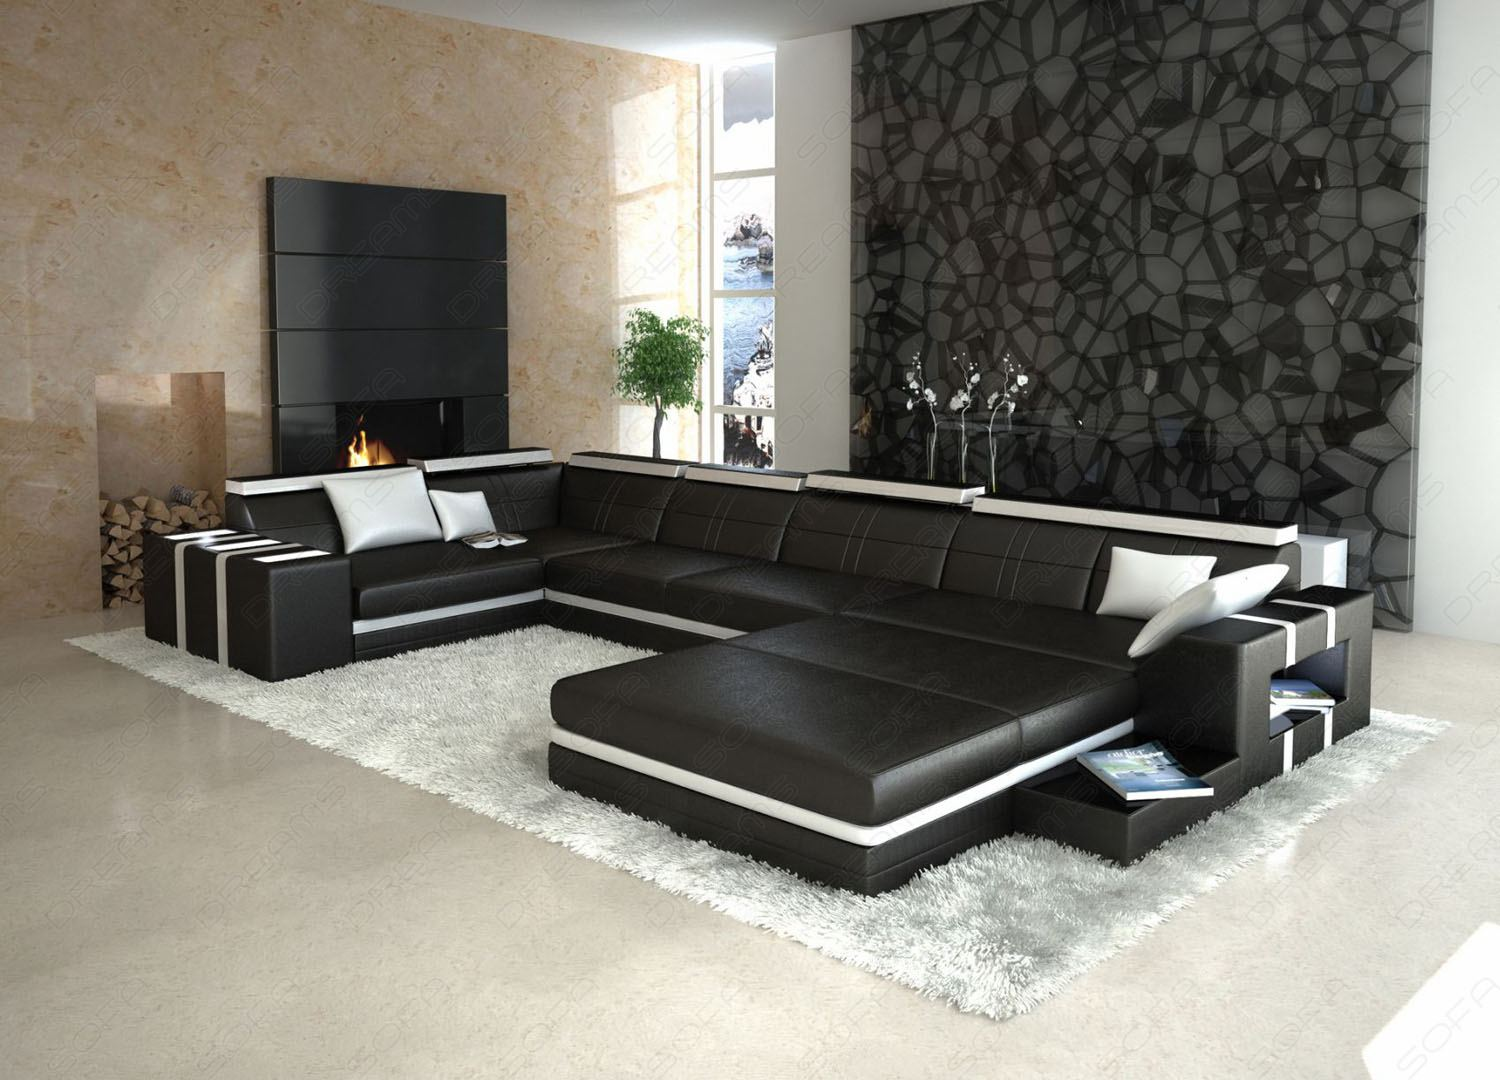 pin leder couch wei mit federkern 5042 r3 w on pinterest. Black Bedroom Furniture Sets. Home Design Ideas